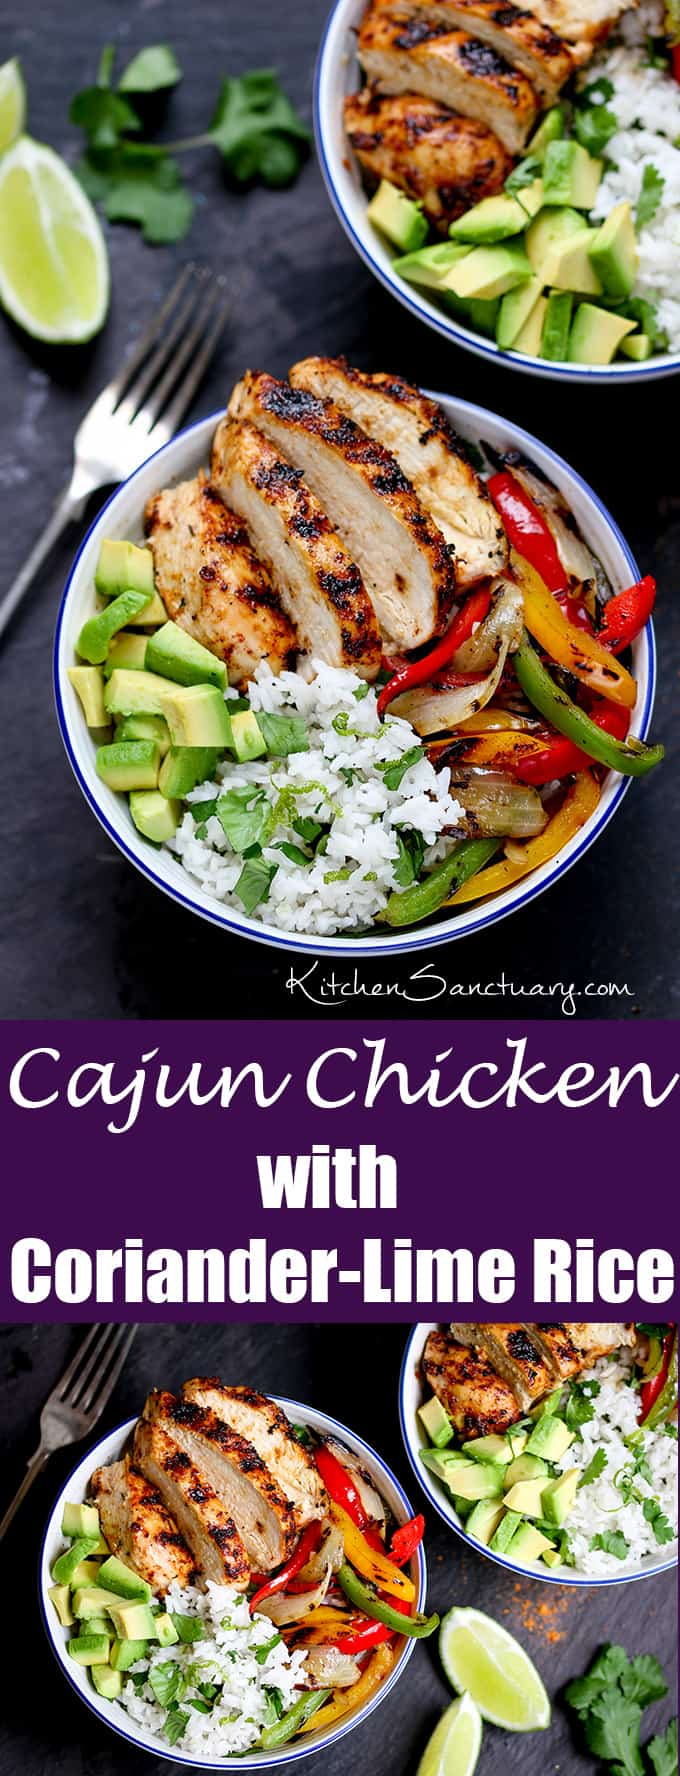 Cajun Chicken with Coriander and Lime Rice Nickys Kitchen Sanctuary